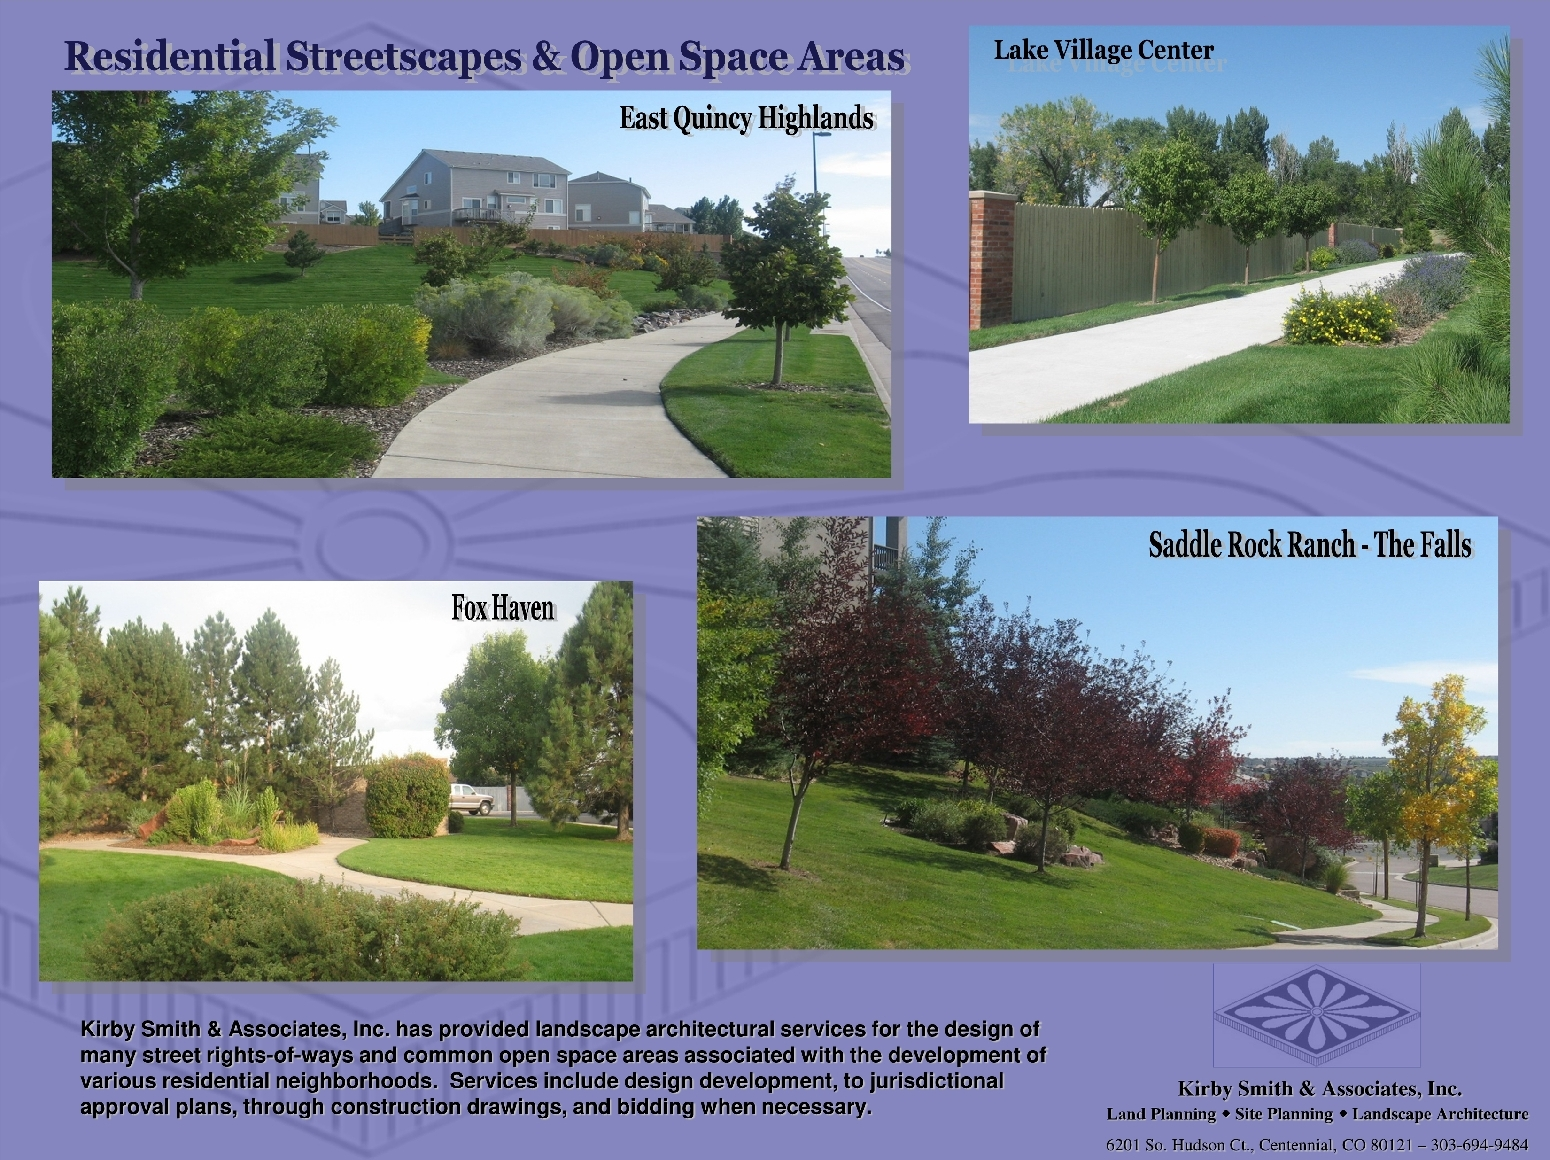 Kirby Smith & Associates, Inc. has provided landscape architectural services for the design of                        many street rights-of-ways and common open space areas associated with the development of                    various residential neighborhoods.  Services include design development, to jurisdictional                         approval plans, through construction drawings, and bidding when necessary.